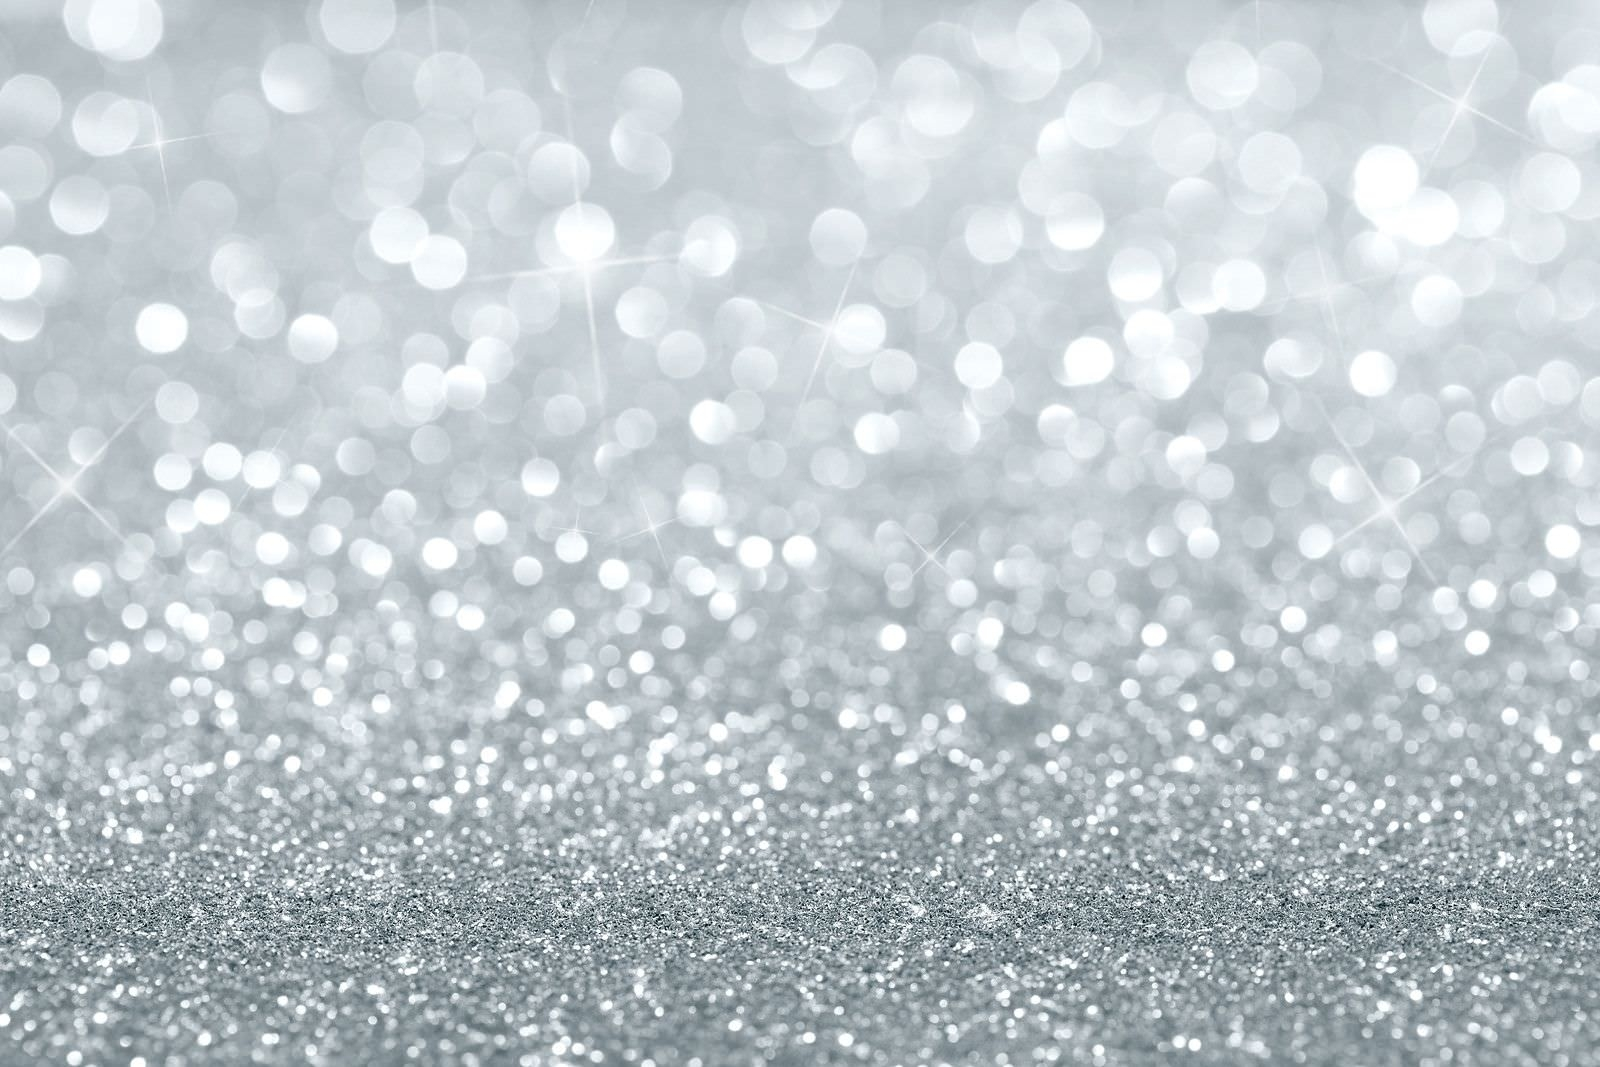 15  White Glitter Backgrounds  Wallpapers  FreeCreatives